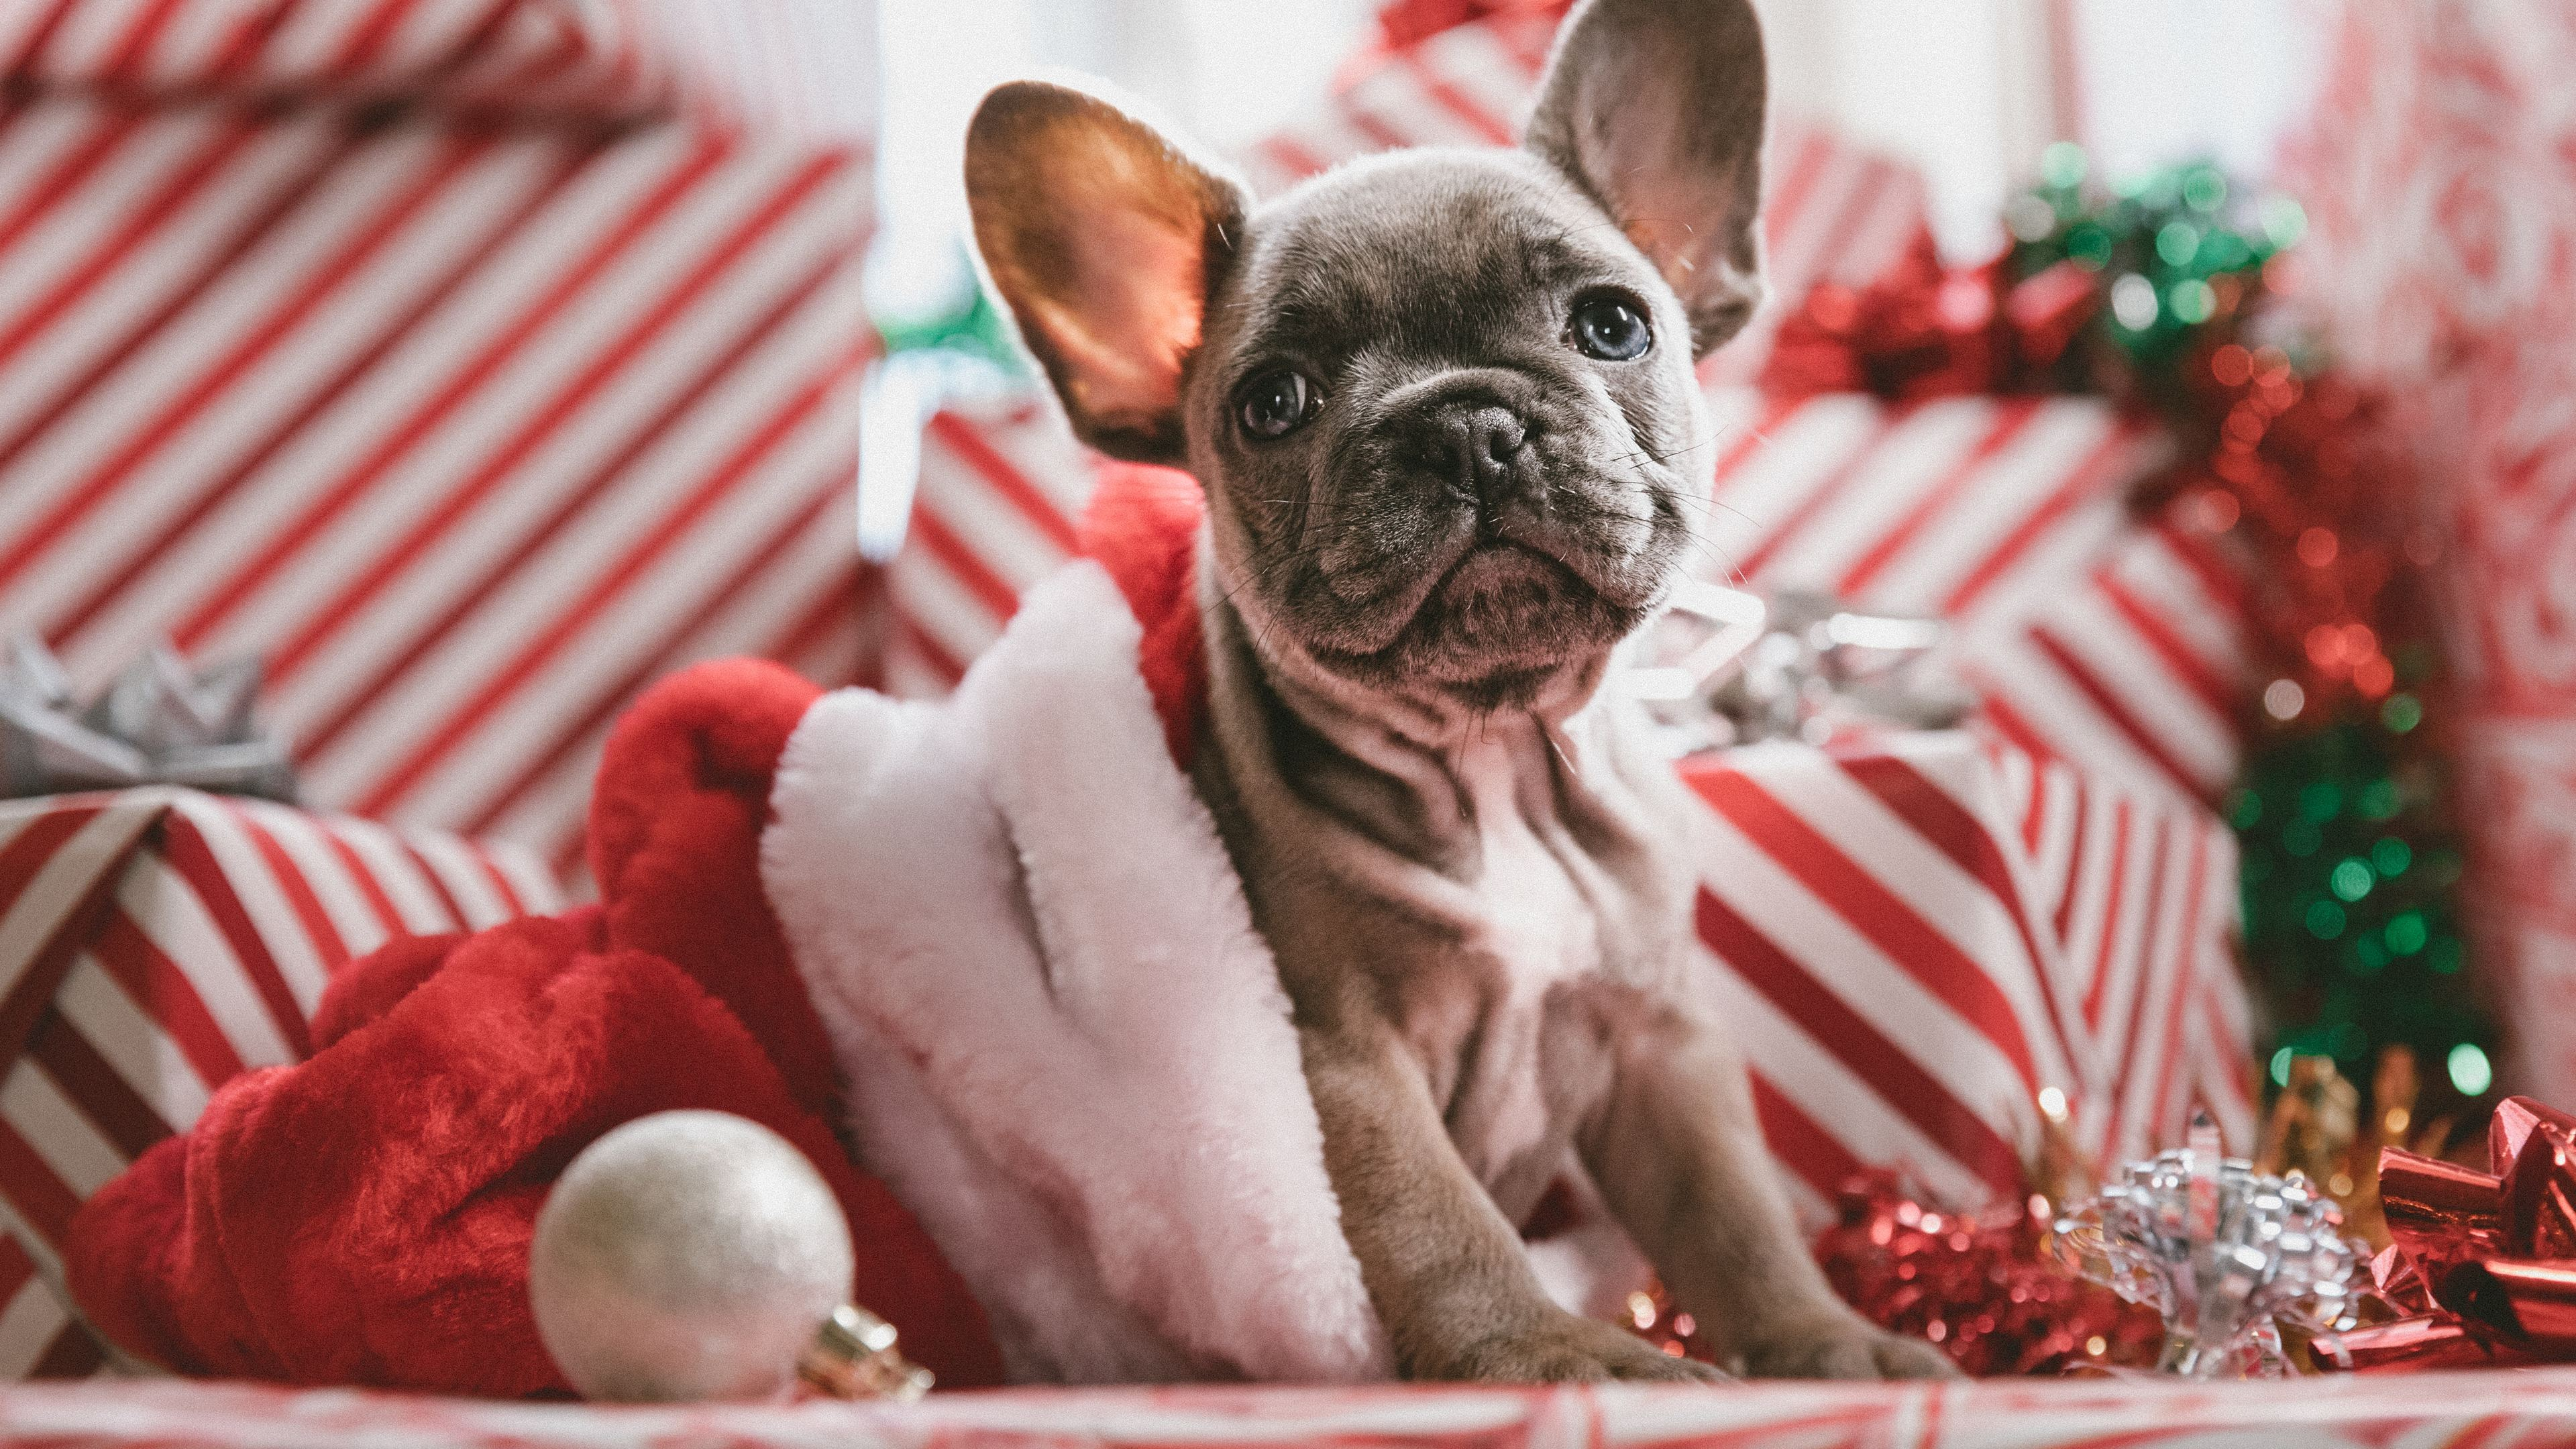 french bulldog christmas 1542238790 - French Bulldog Christmas - hd-wallpapers, french bull dog wallpapers, bull dog wallpapers, animals wallpapers, 4k-wallpapers